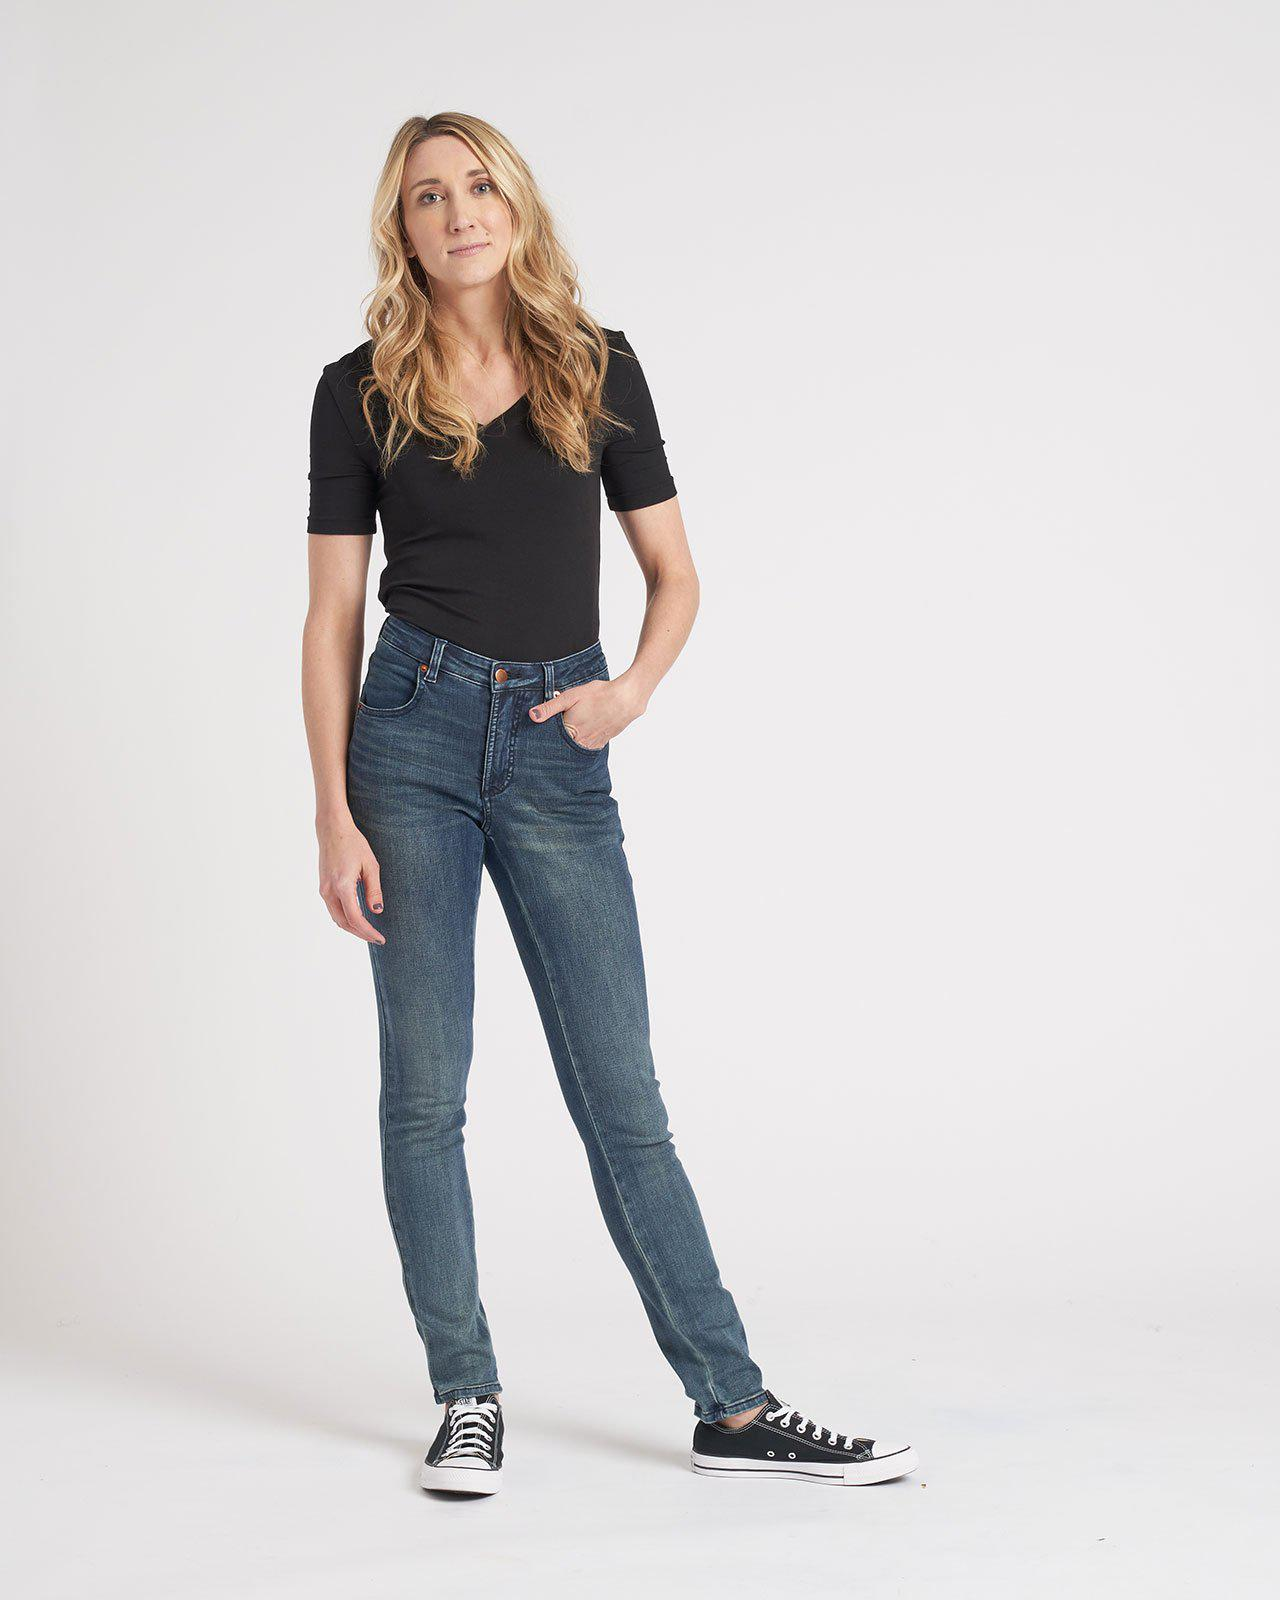 Seine Mid Rise Skinny Jeans 32 Inch